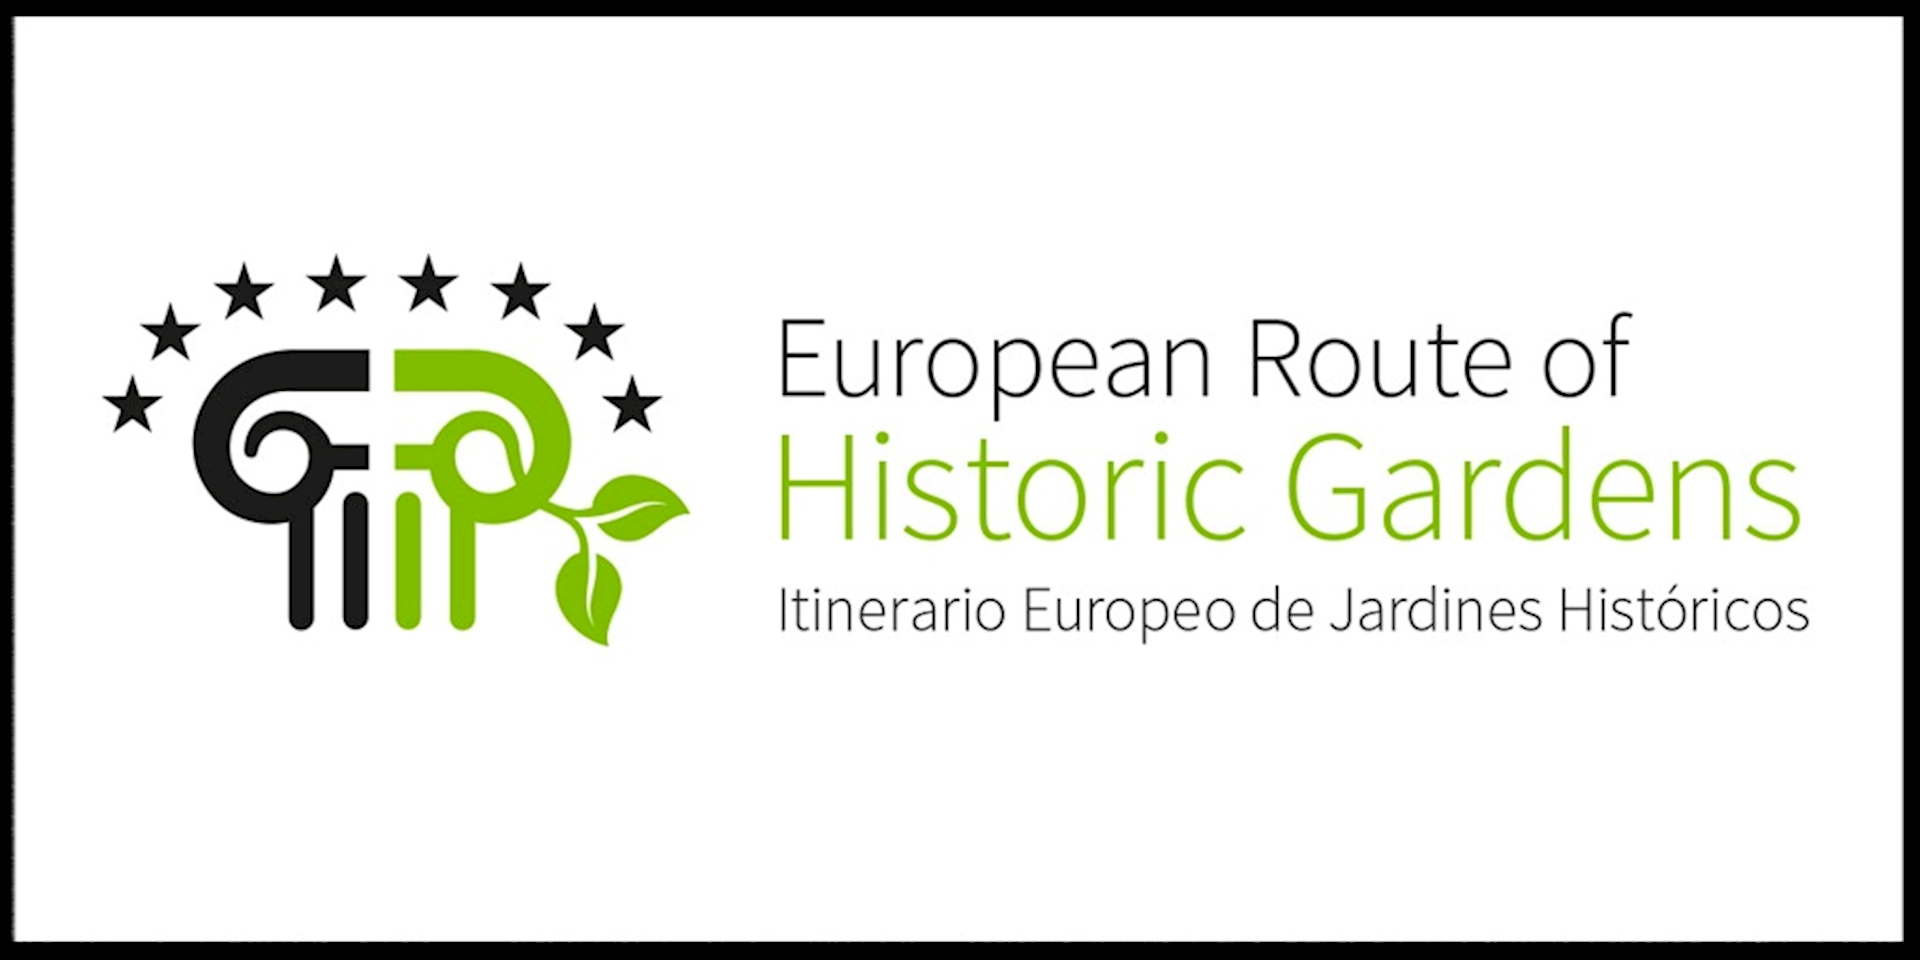 EUROPEAN ROUTE OF HISTORIC GARDENS